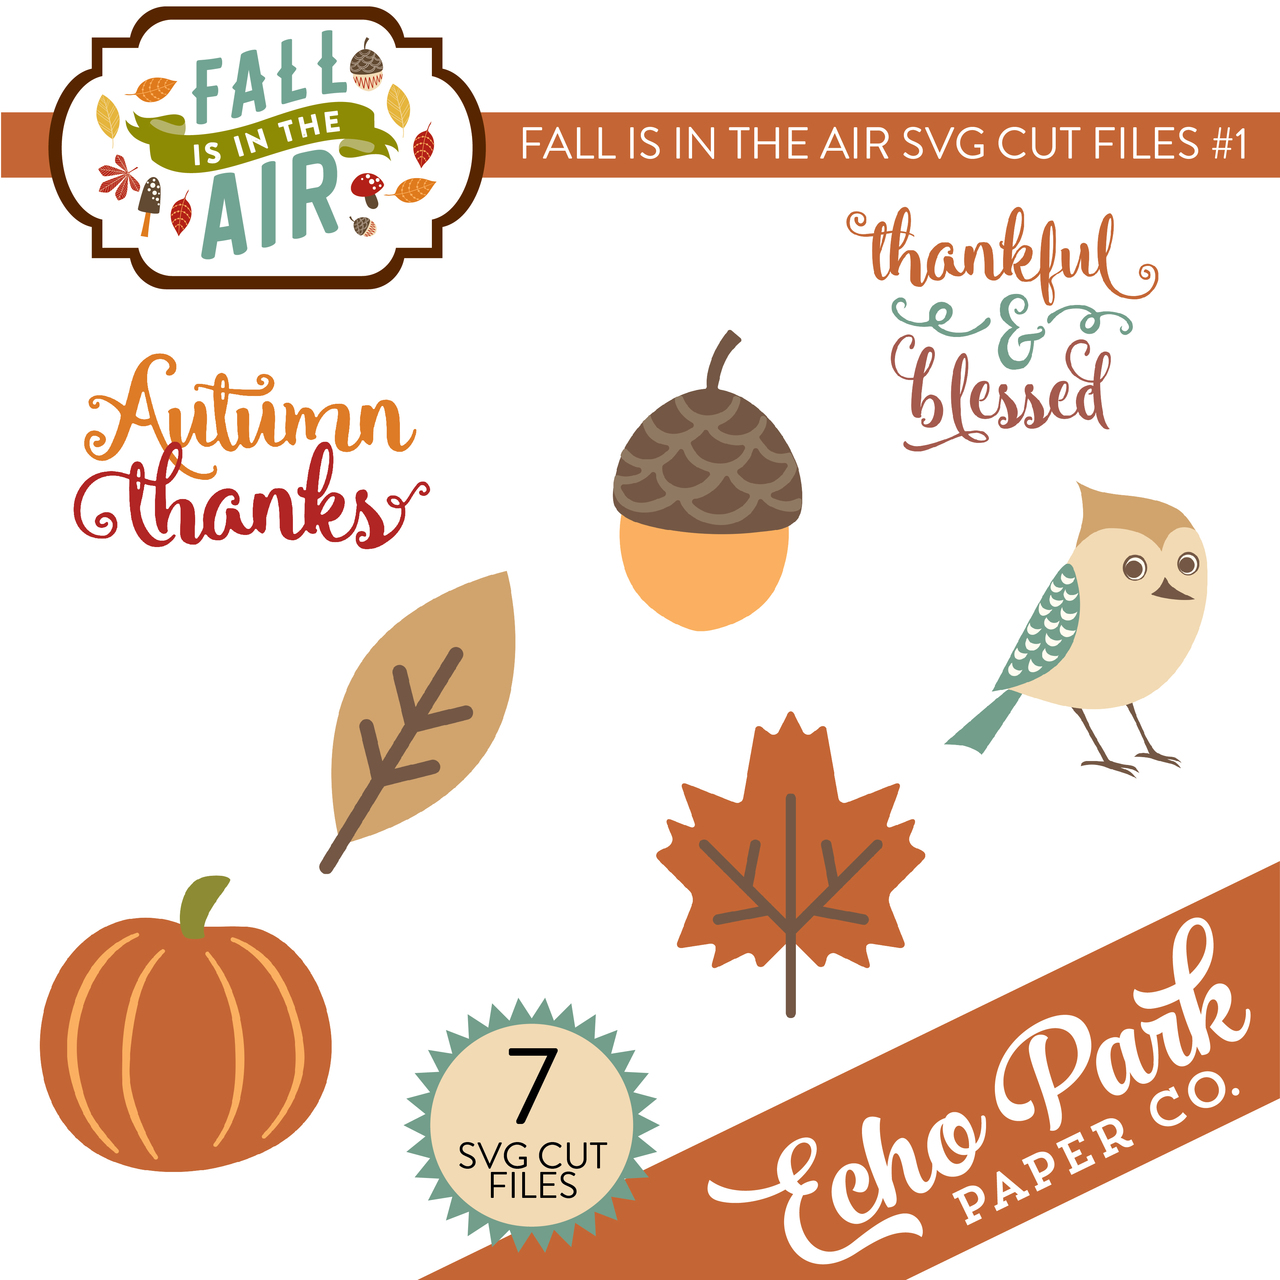 Fall Is In The Air SVG Cut Files #1